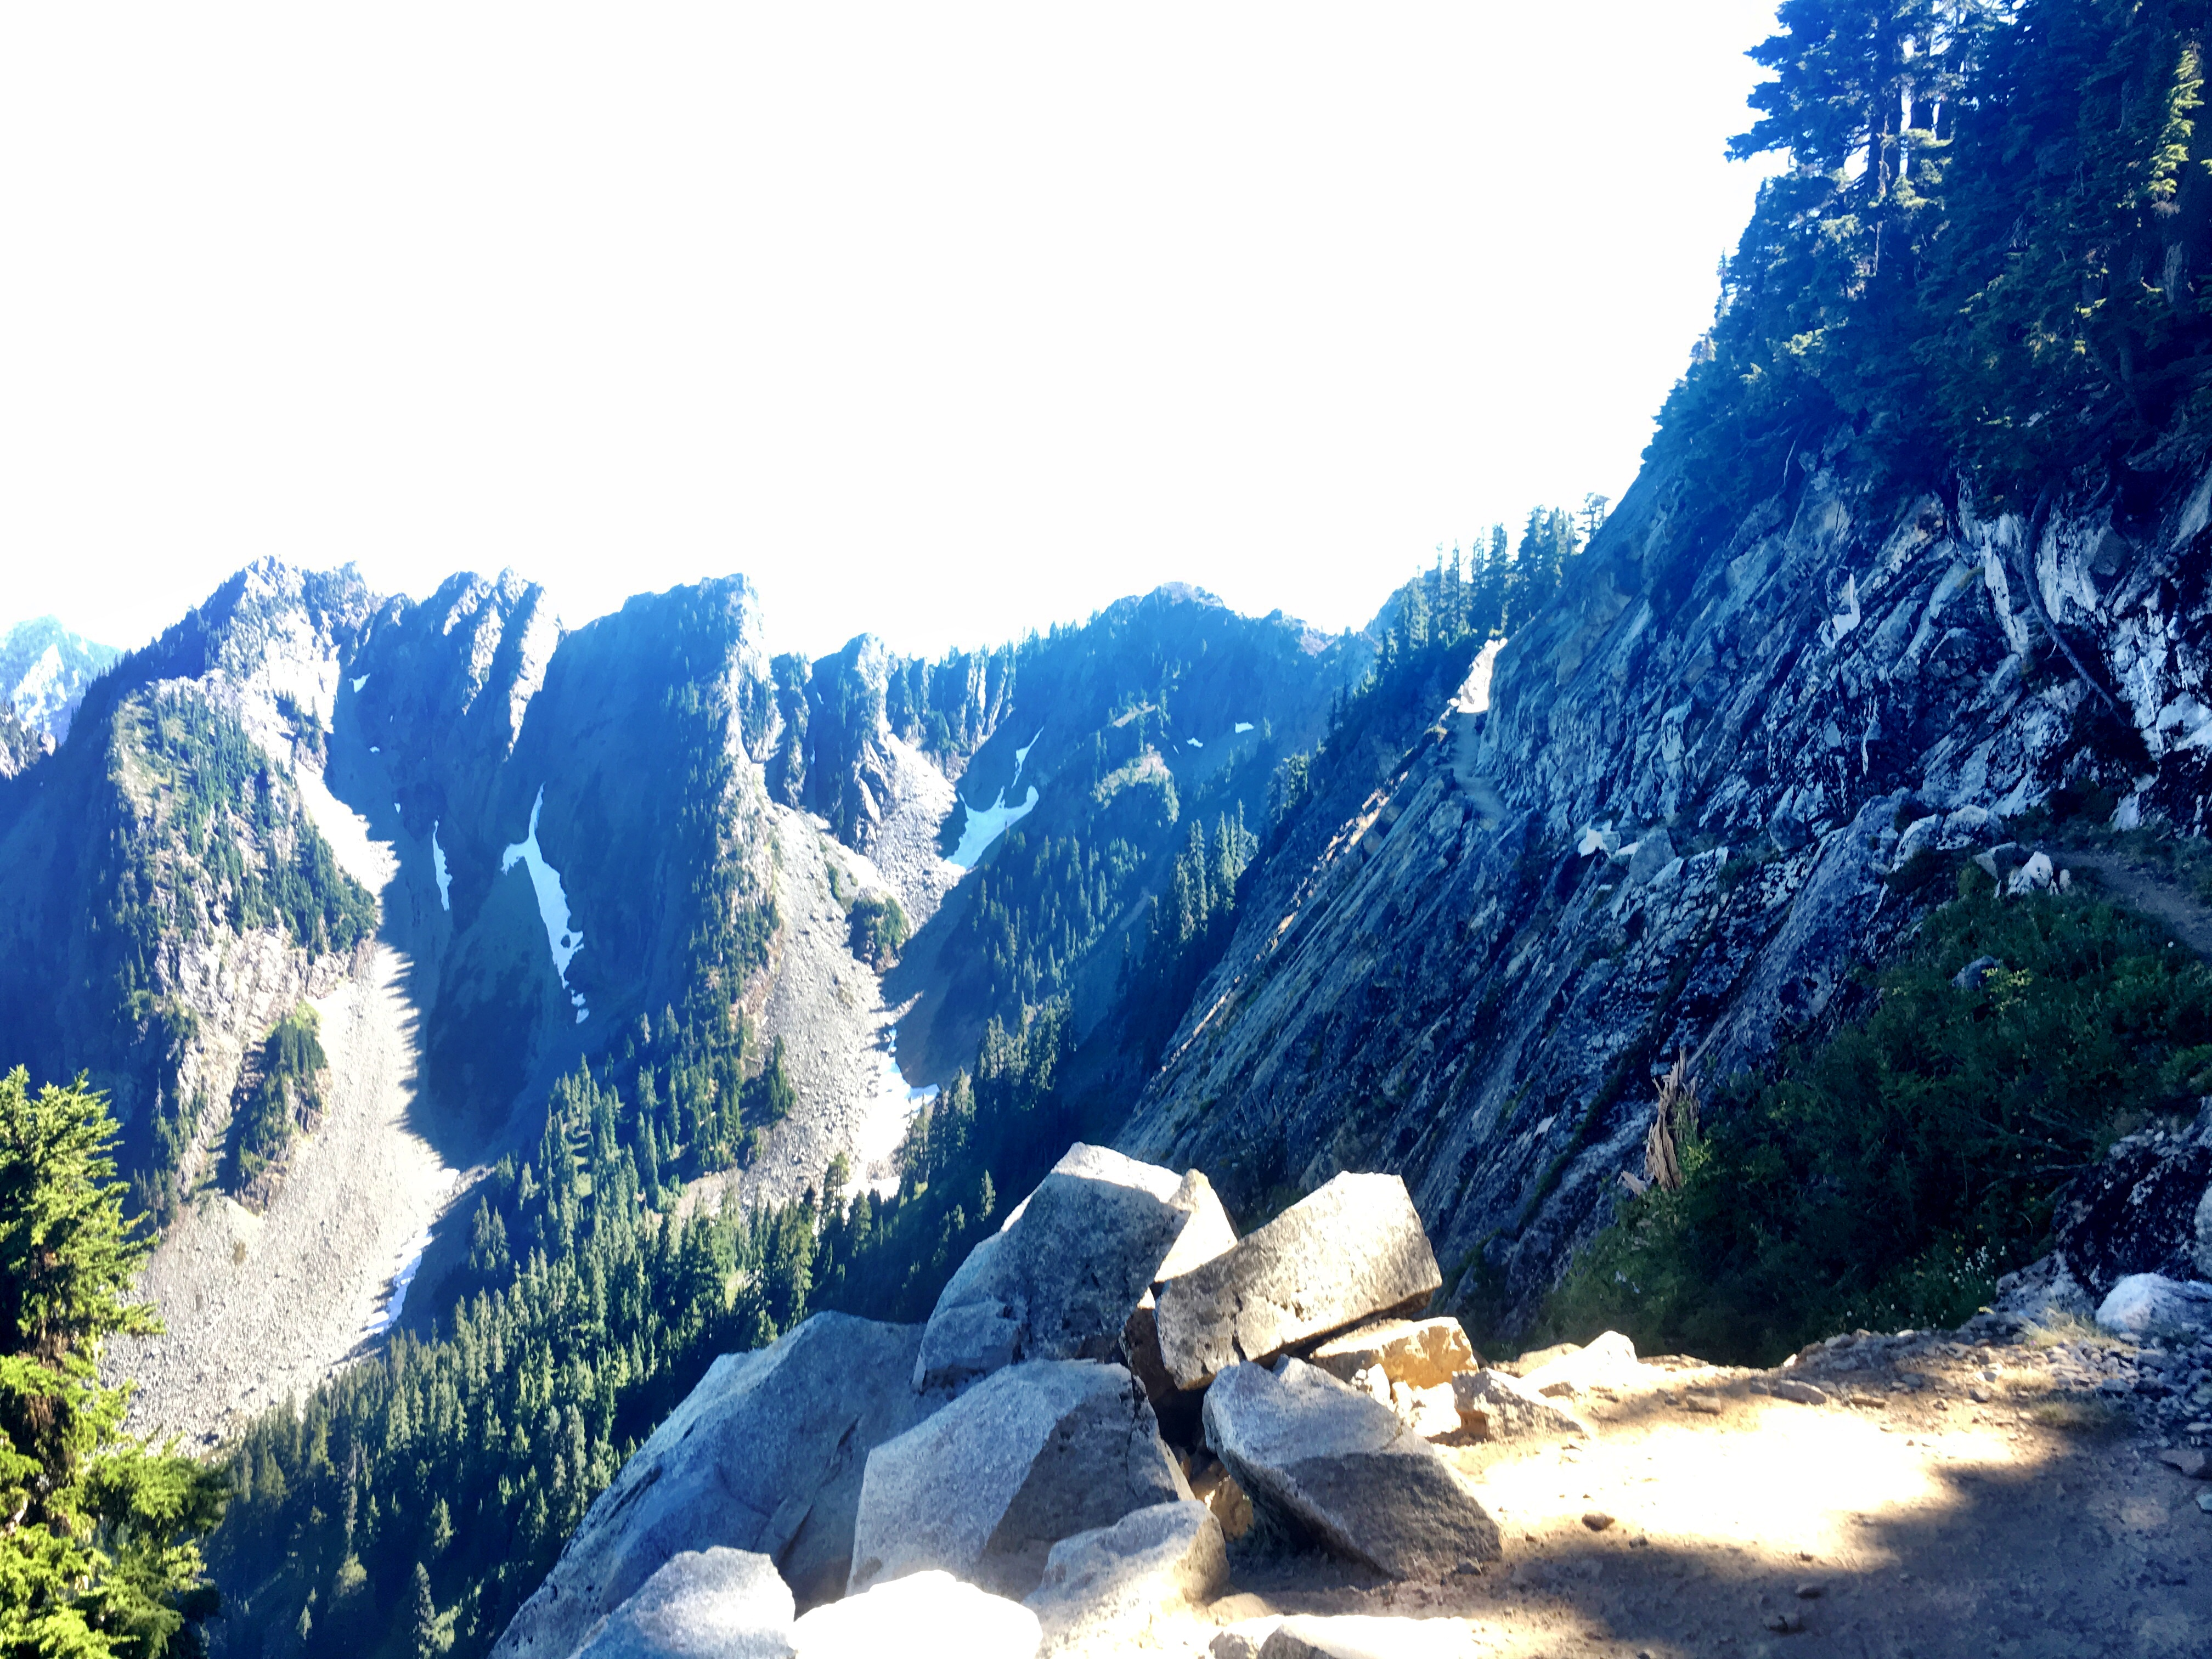 Kendal Catwalk on Stevens Pass to Snoqualmie Pass